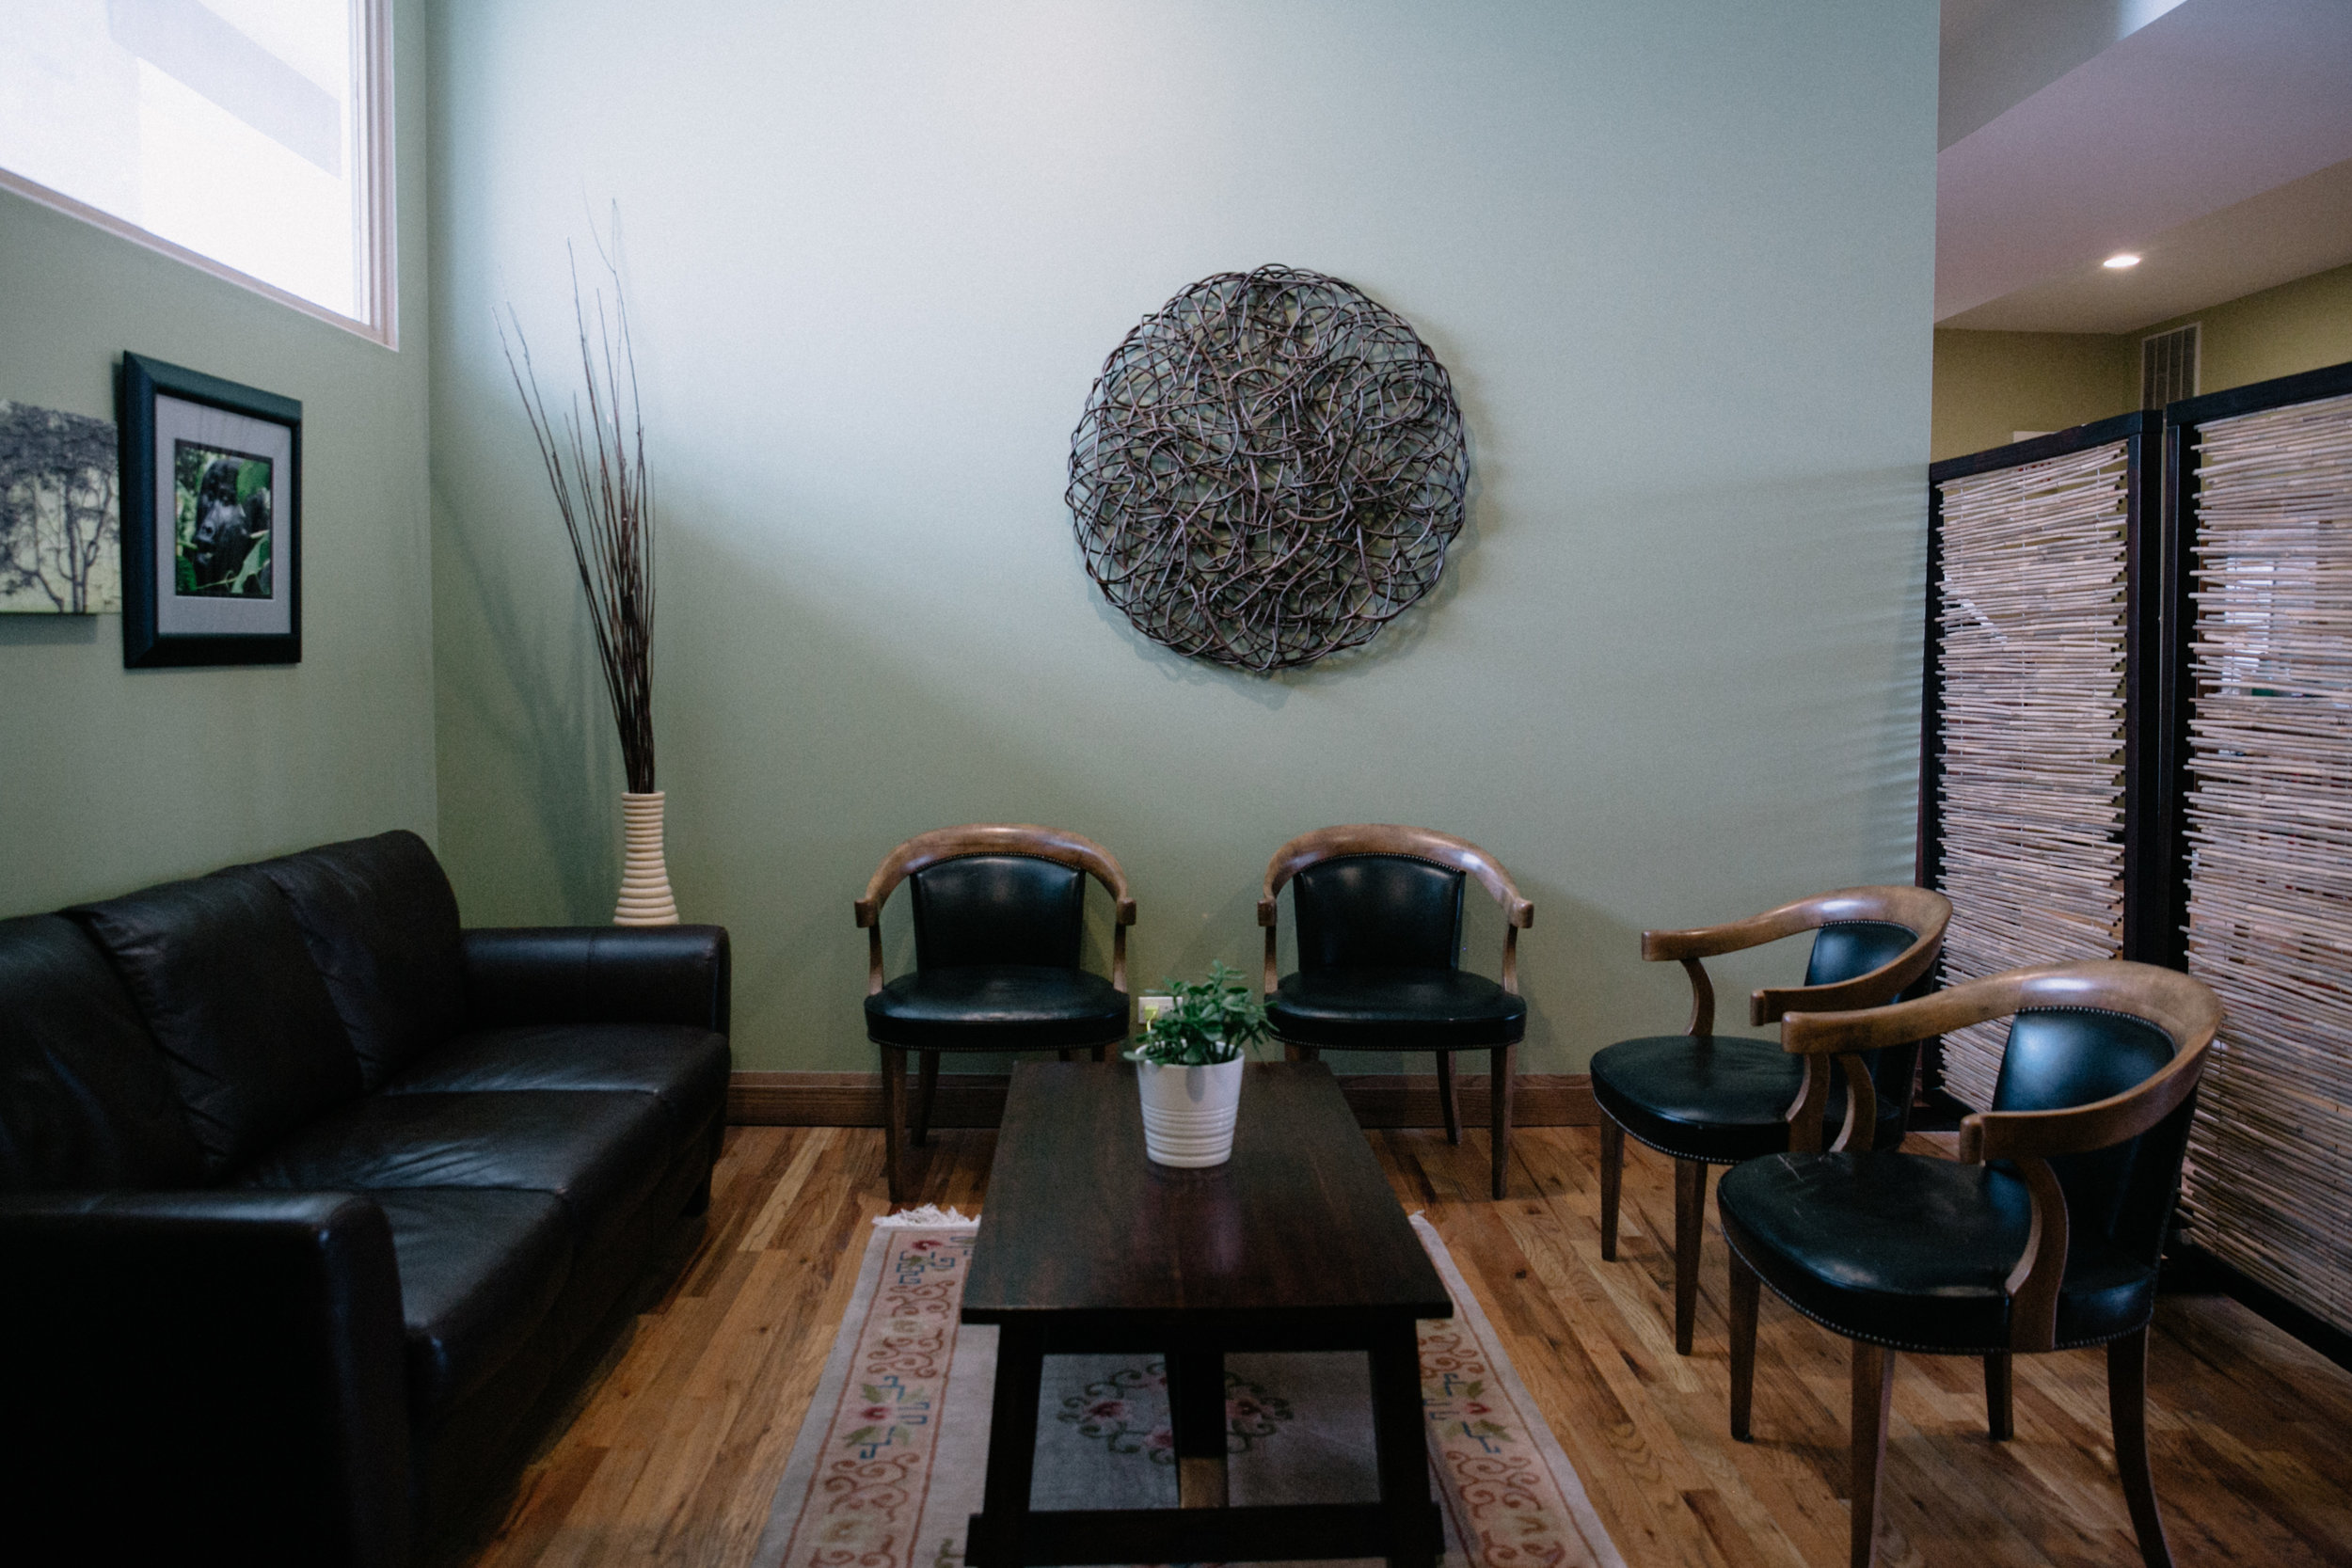 Our Practice - We are located on the border of Bucktown and Wicker Park, just east of the Six Corners. Massages take place at Windy City Wellness, our partner who offers chiropractic and rehabilitation services.